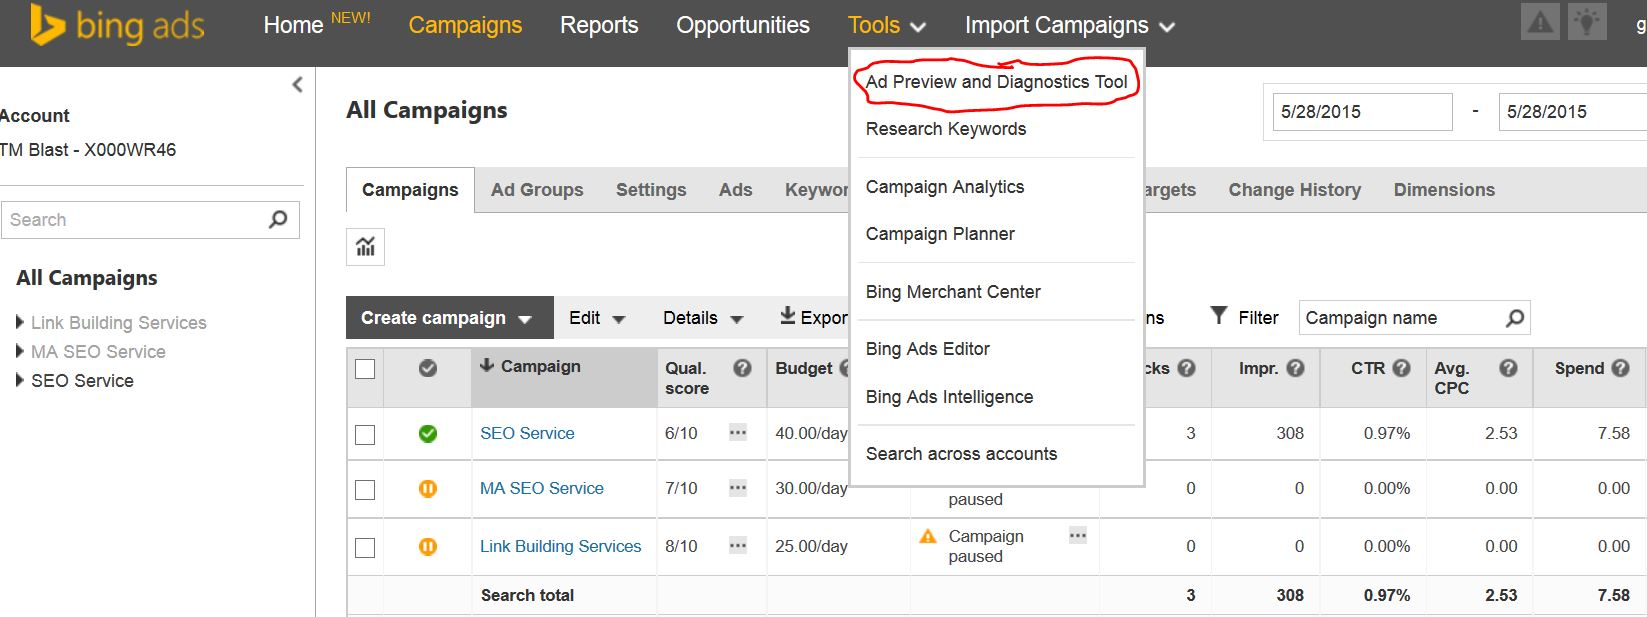 Ad Preview and Diagnostics Tool in Bing Ads